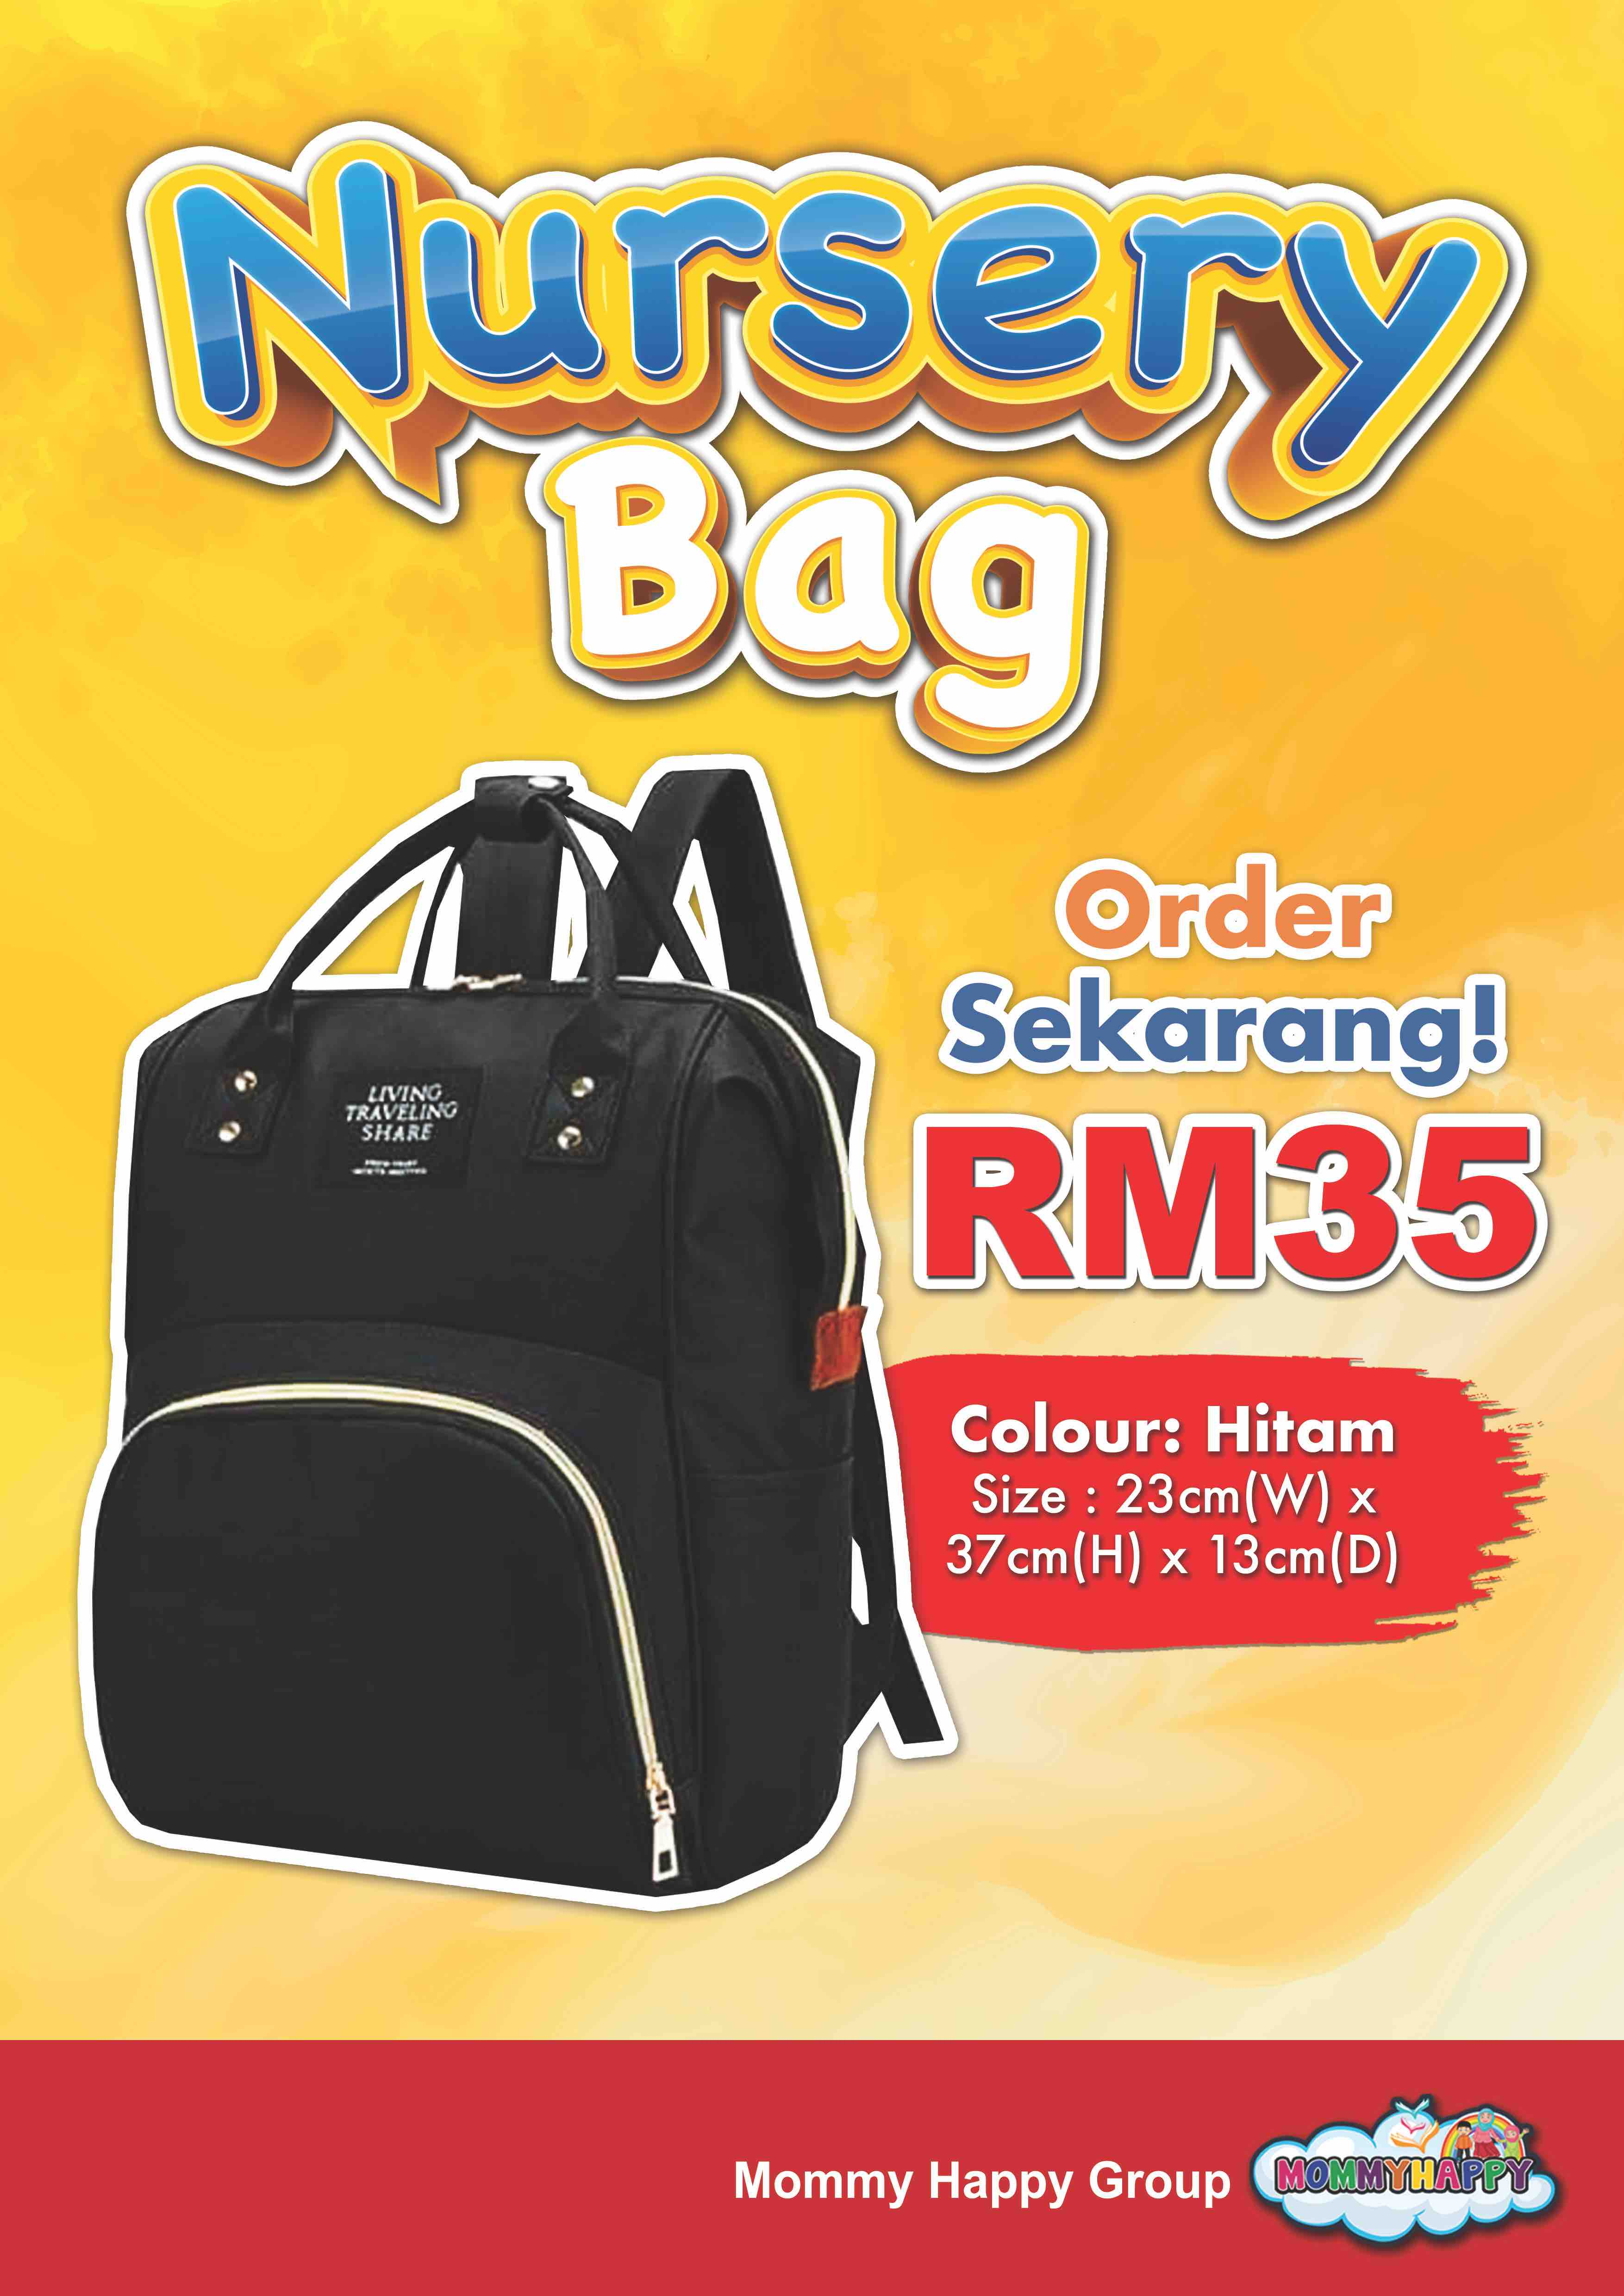 BAG02-NURSERY BAG HITAM